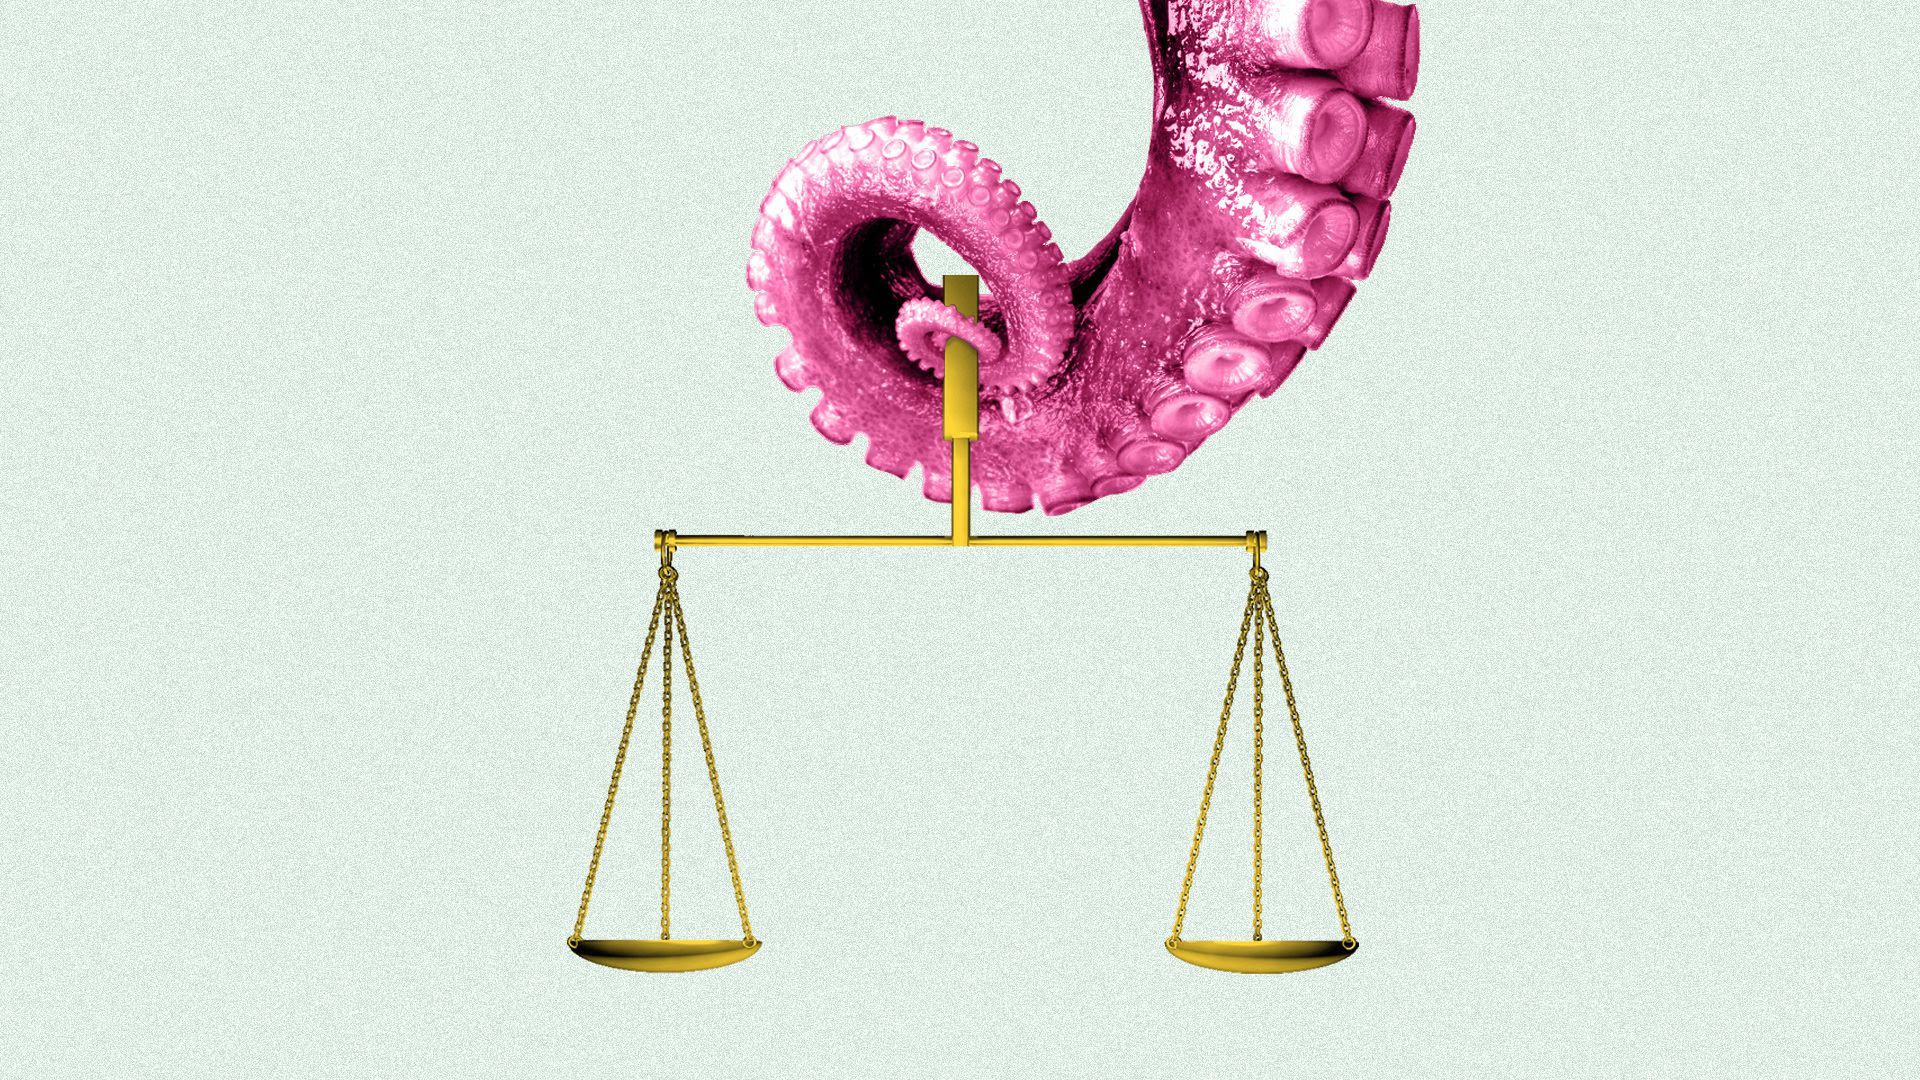 illustration of an octopus holding a scale